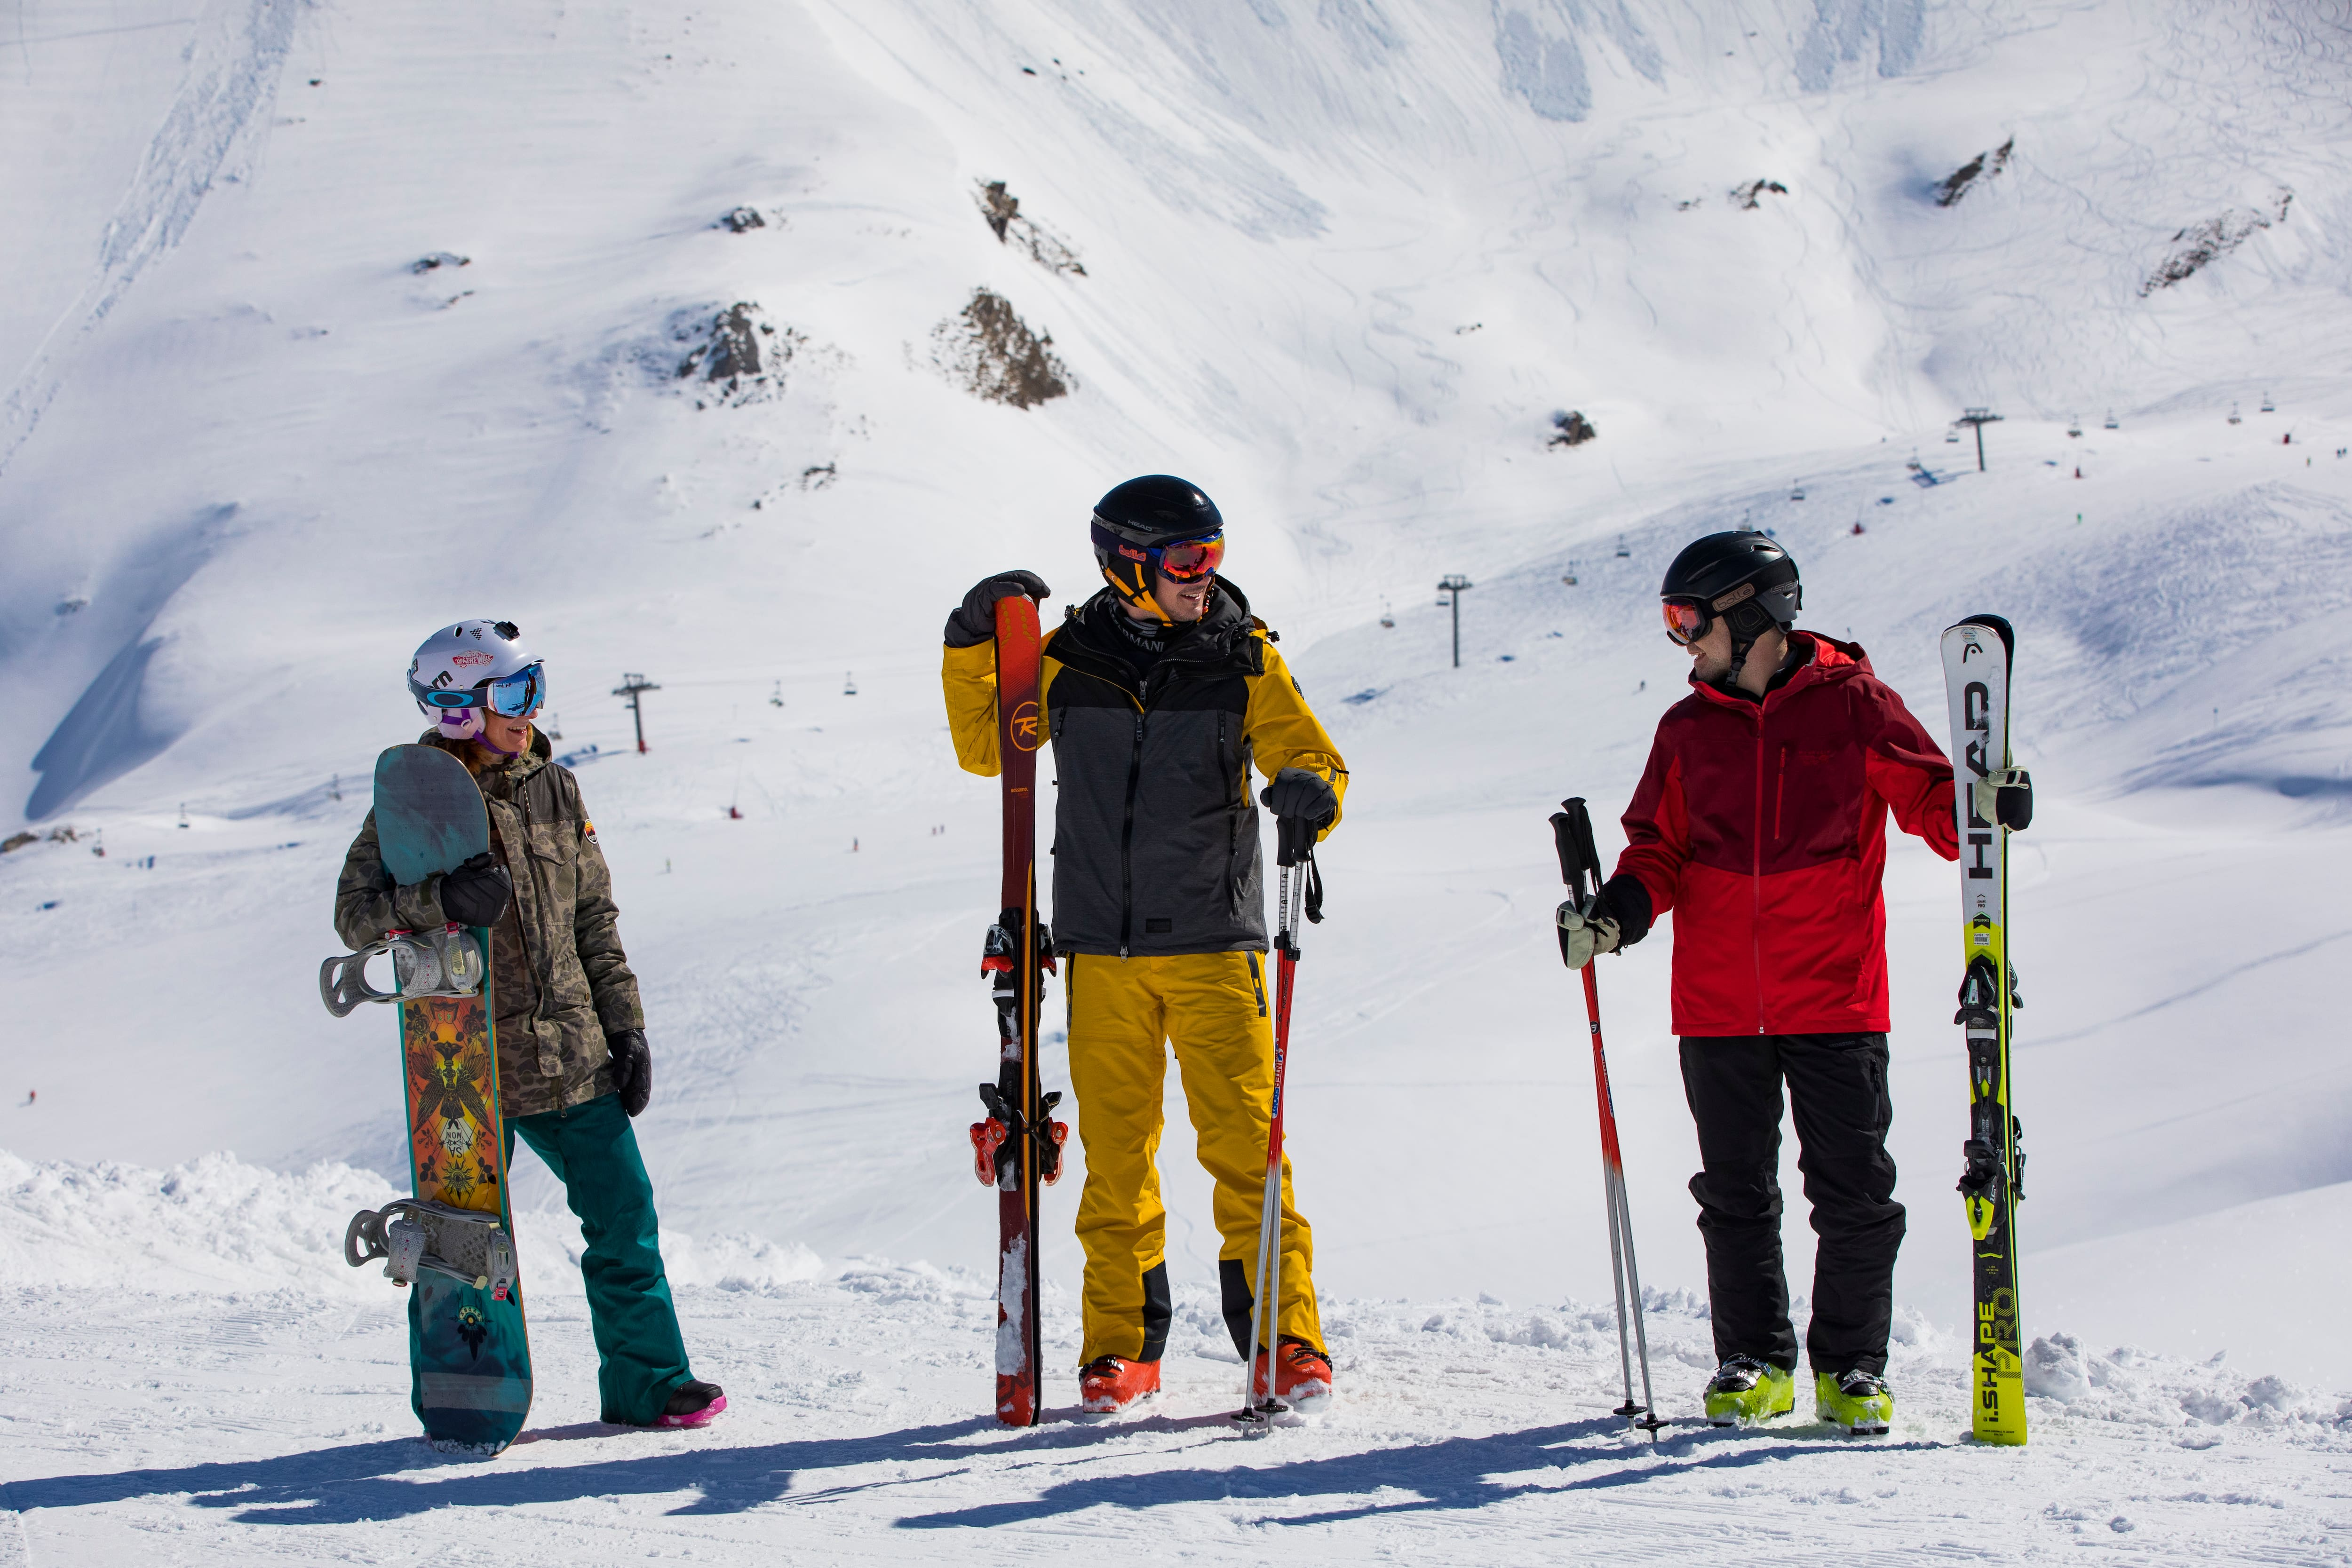 Two skiers and a snowboarder on the slopes